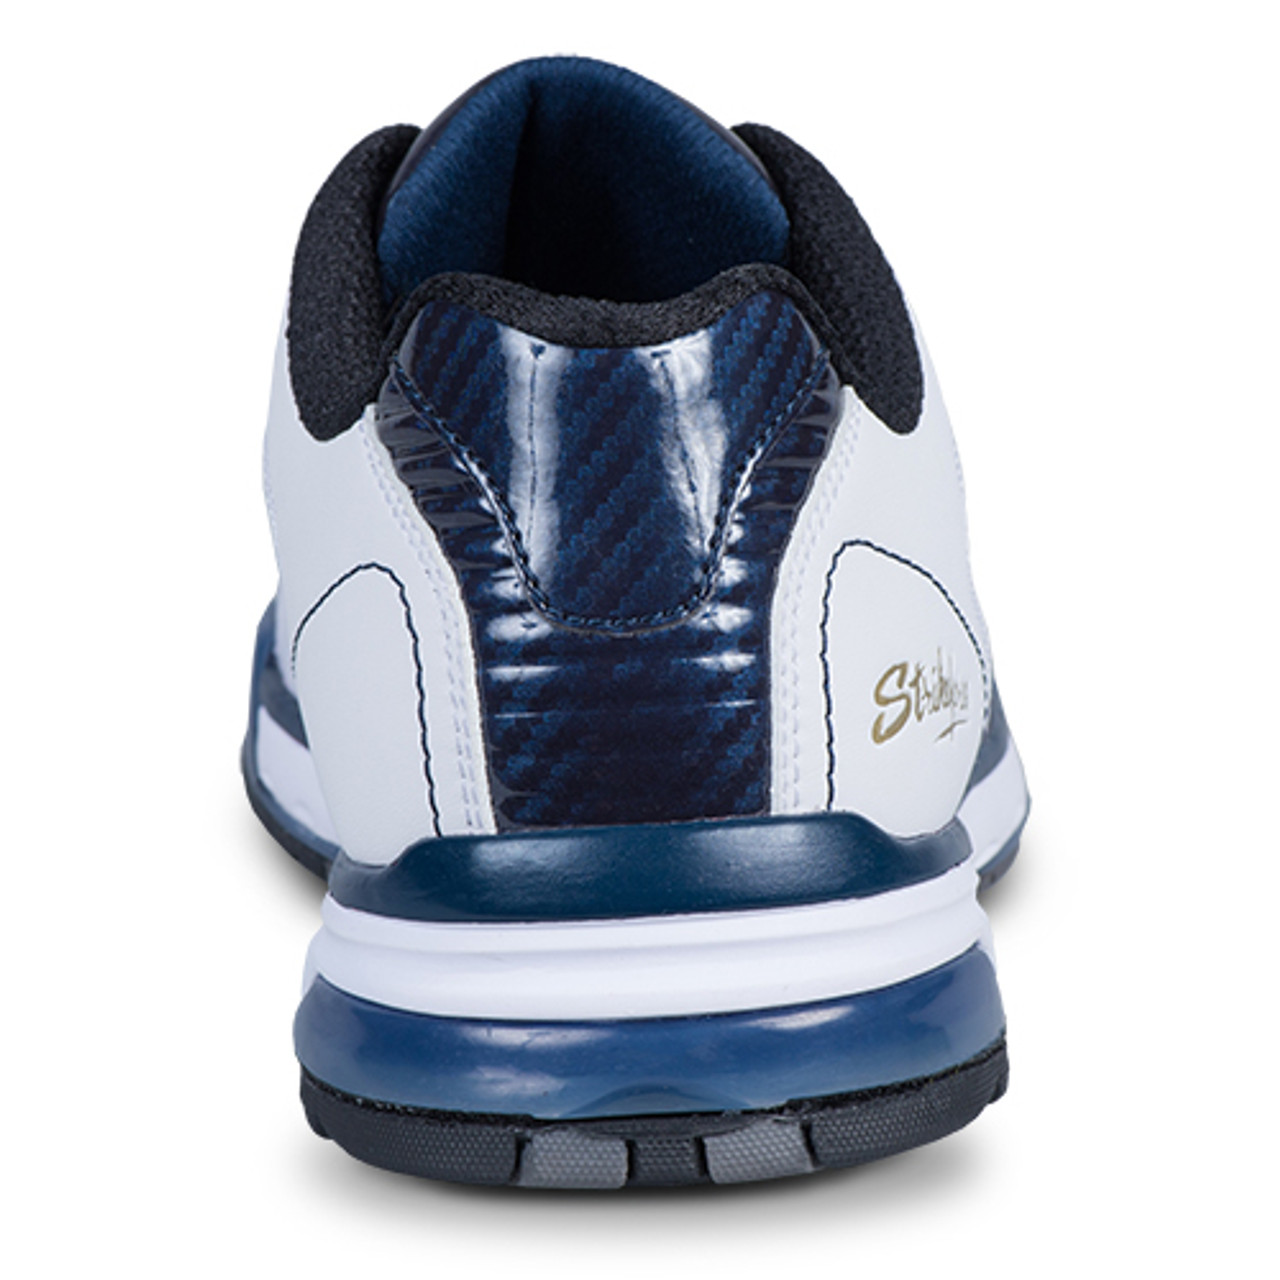 KR Strikeforce Mens Rage Bowling Shoes White/Navy Right Handed